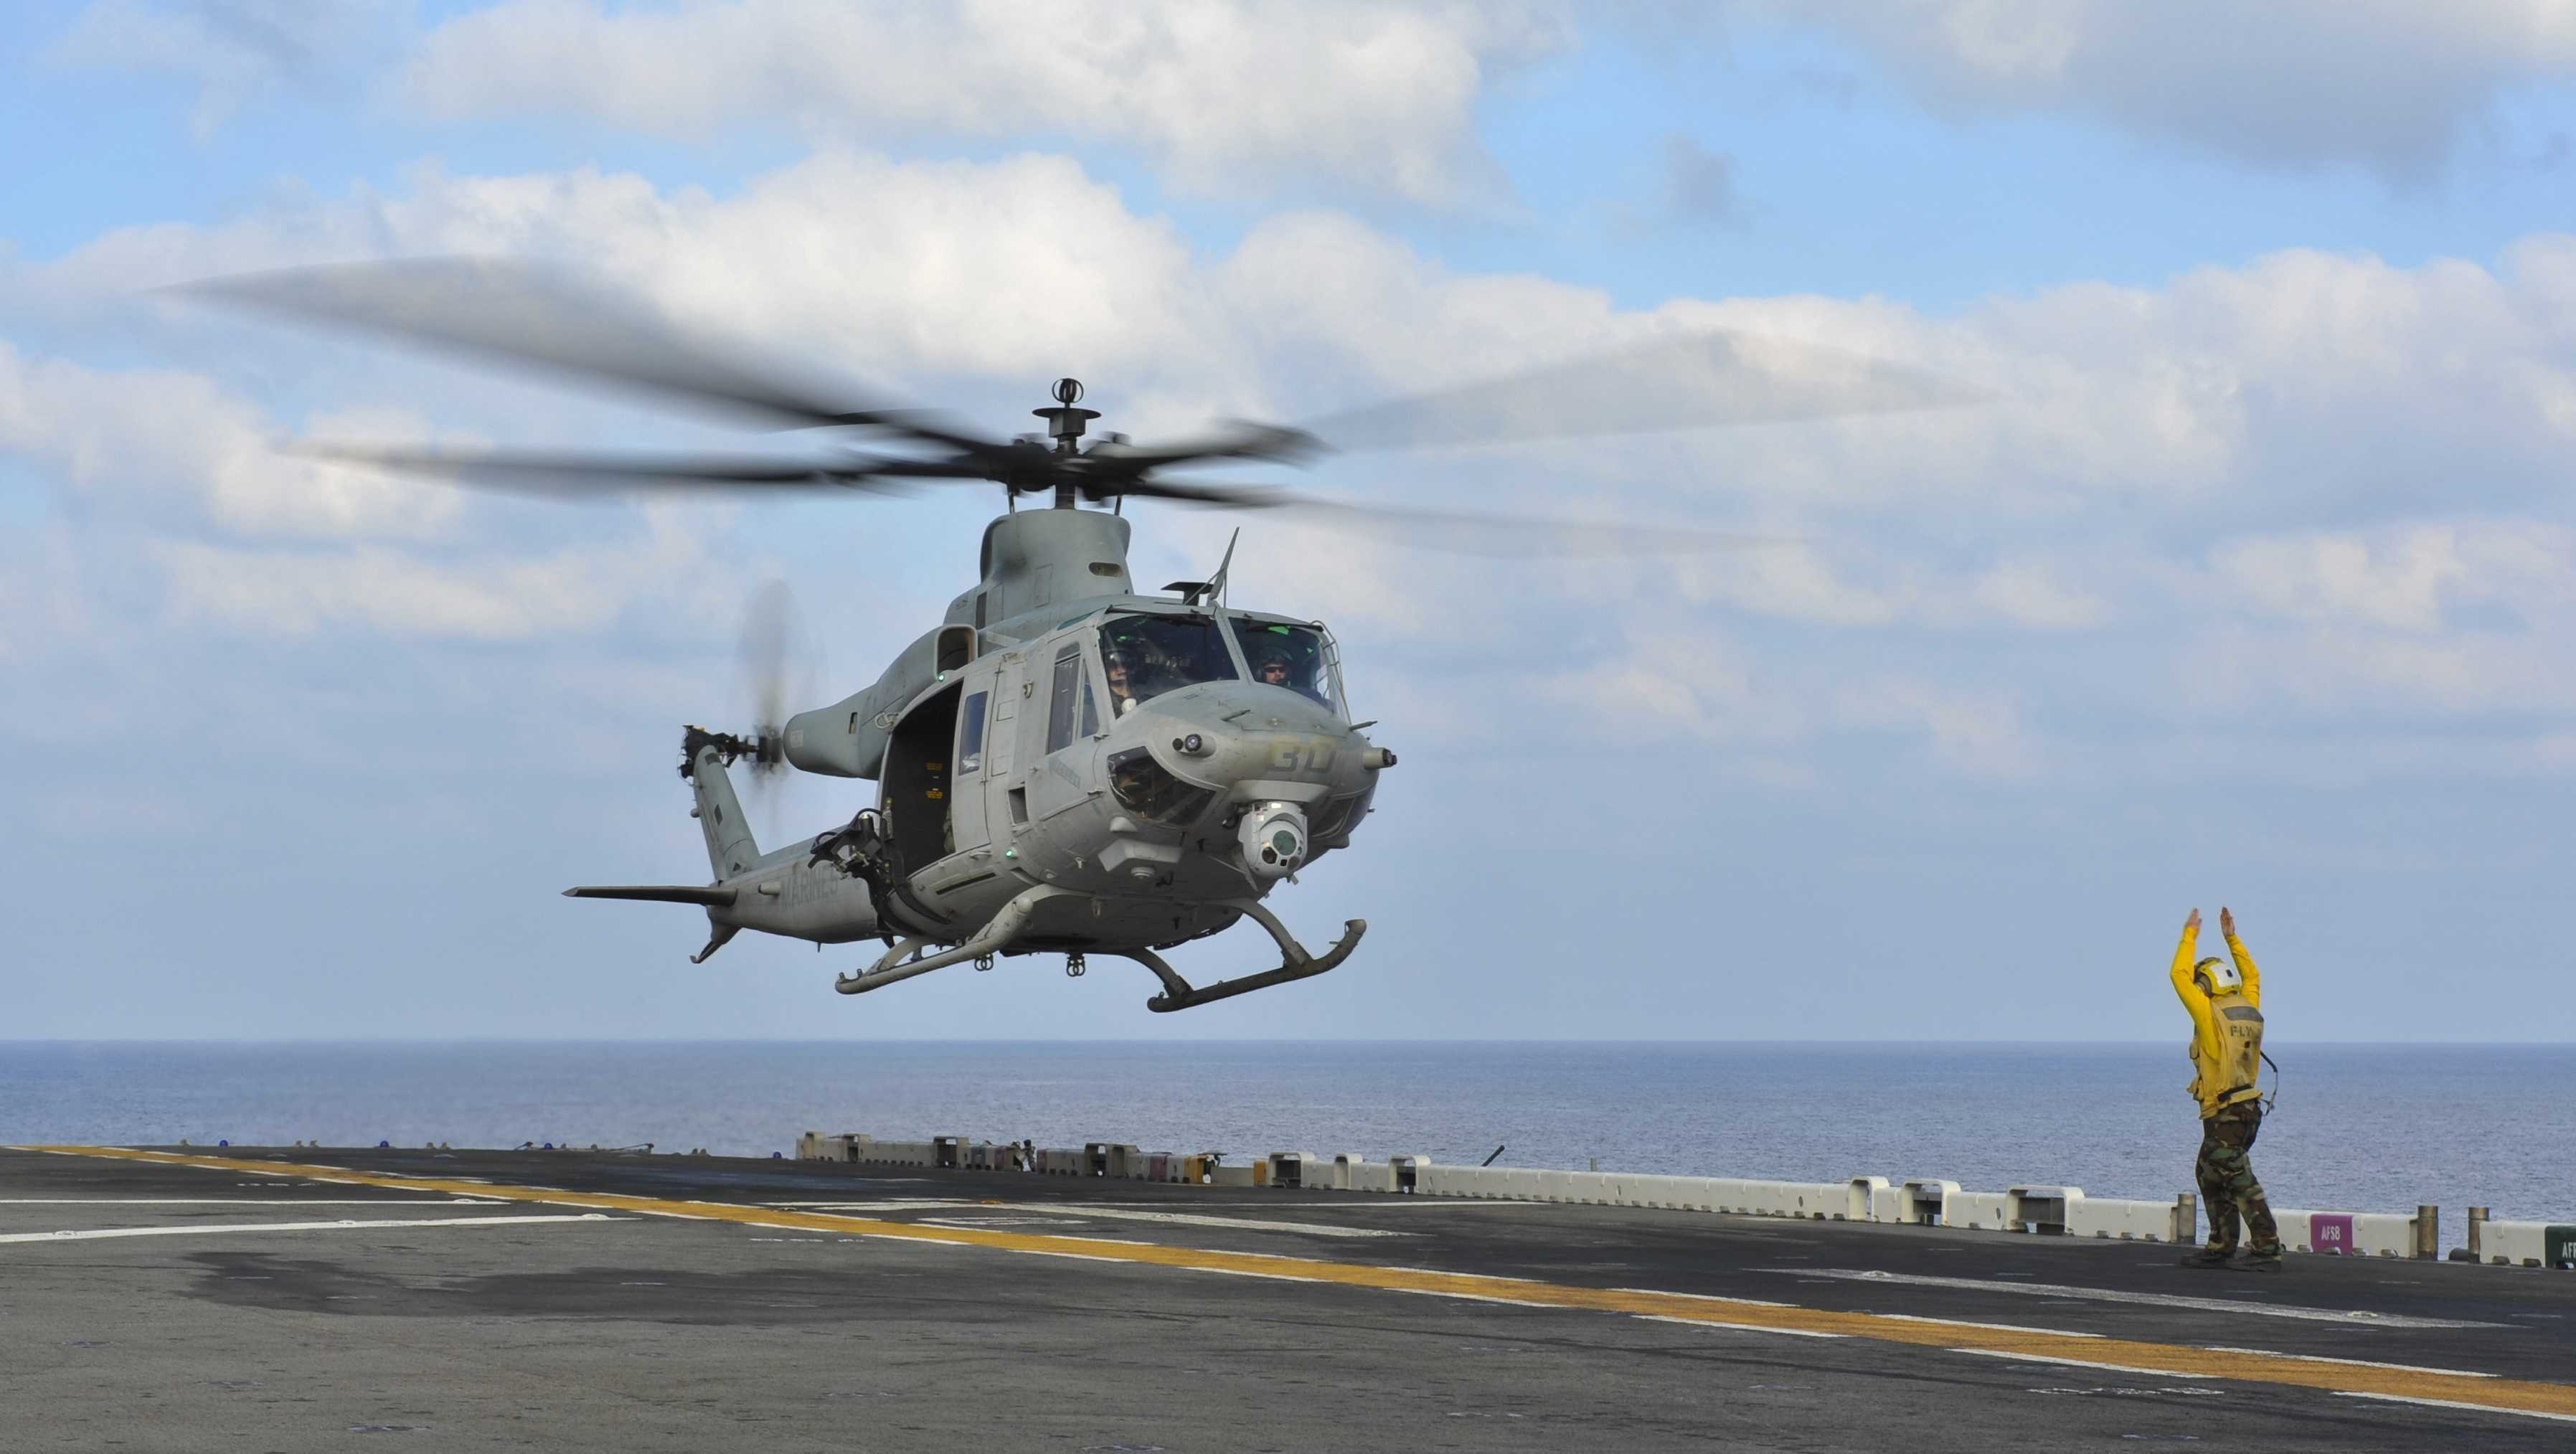 An Aviation Boatswain's Mate directs a UH-1Y Venom helicopter as it lifts off from the USS Bonhomme Richard.